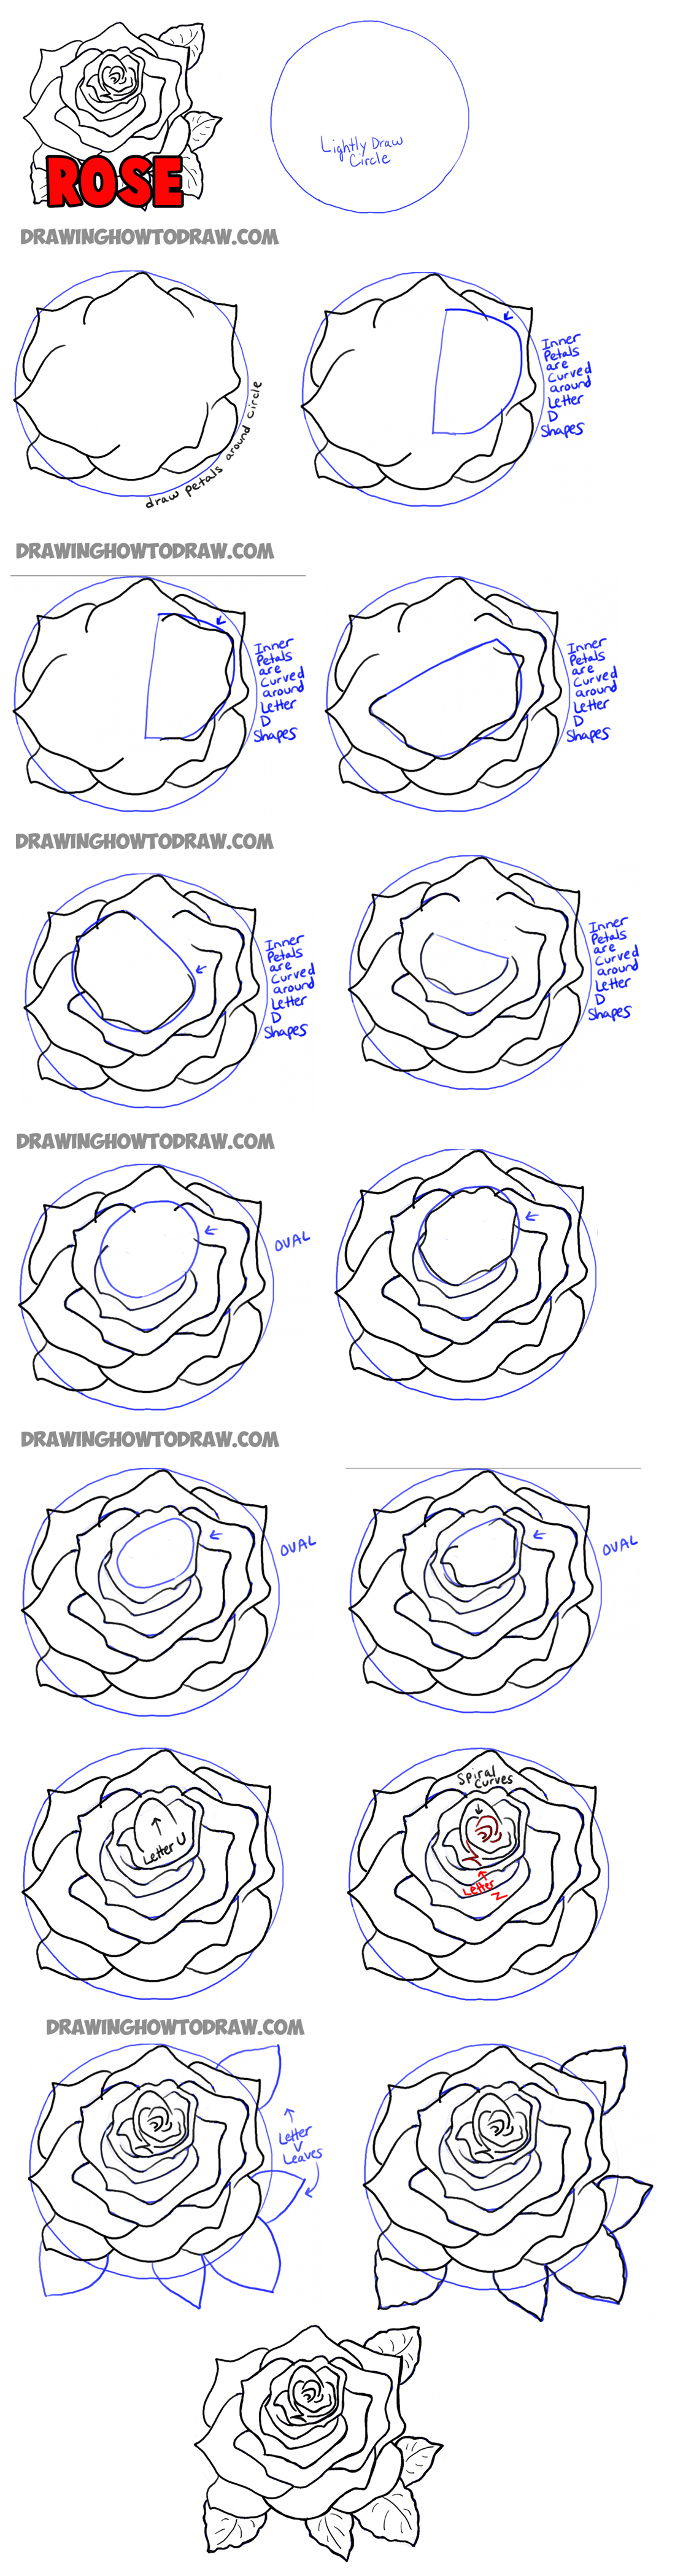 How To Draw Roses Opening In Full Bloom Step By Step Drawing Tutorial How To Draw Step By Step Drawing Tutorials